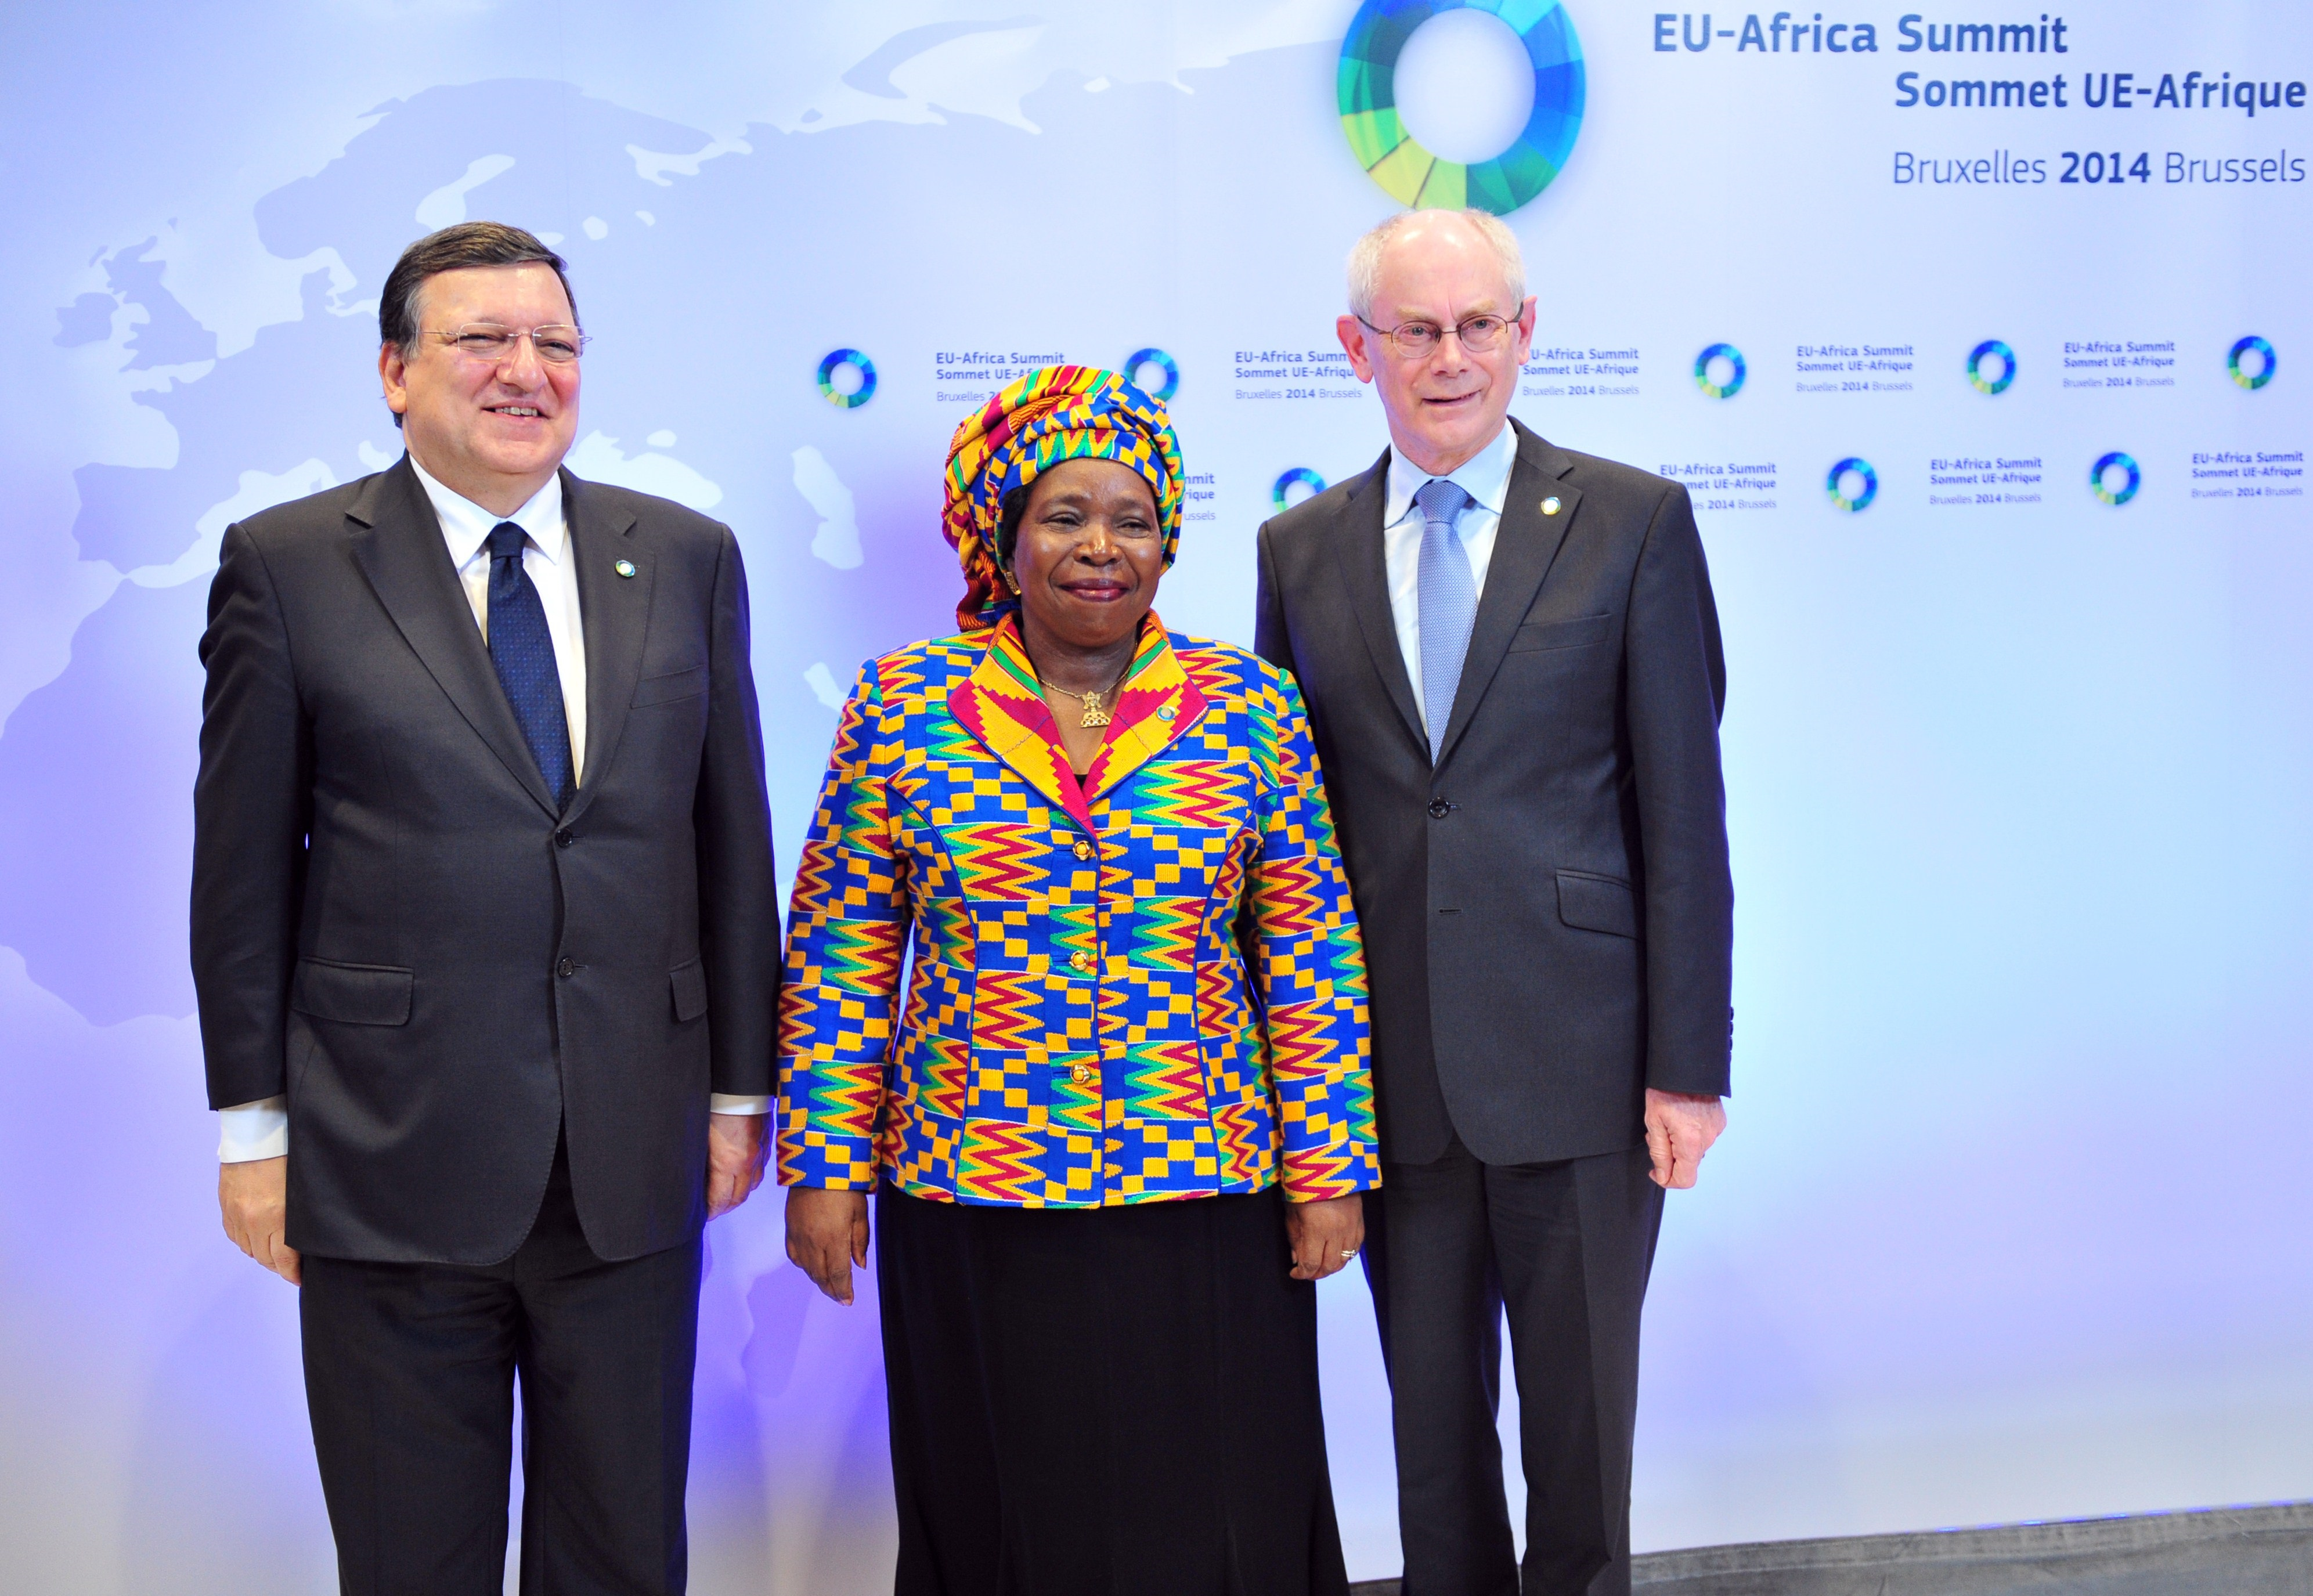 European Commission President Jose Manuel Barroso (L) and EU Council president Herman Van Rompuy (R) welcome African Union Commission Chairperson Nkosazana Clarice Dlamini Zuma before the fourth EU-Africa summit held on 2 April 2014 at the EU Headquarters in Brussels. (AFP Photo)